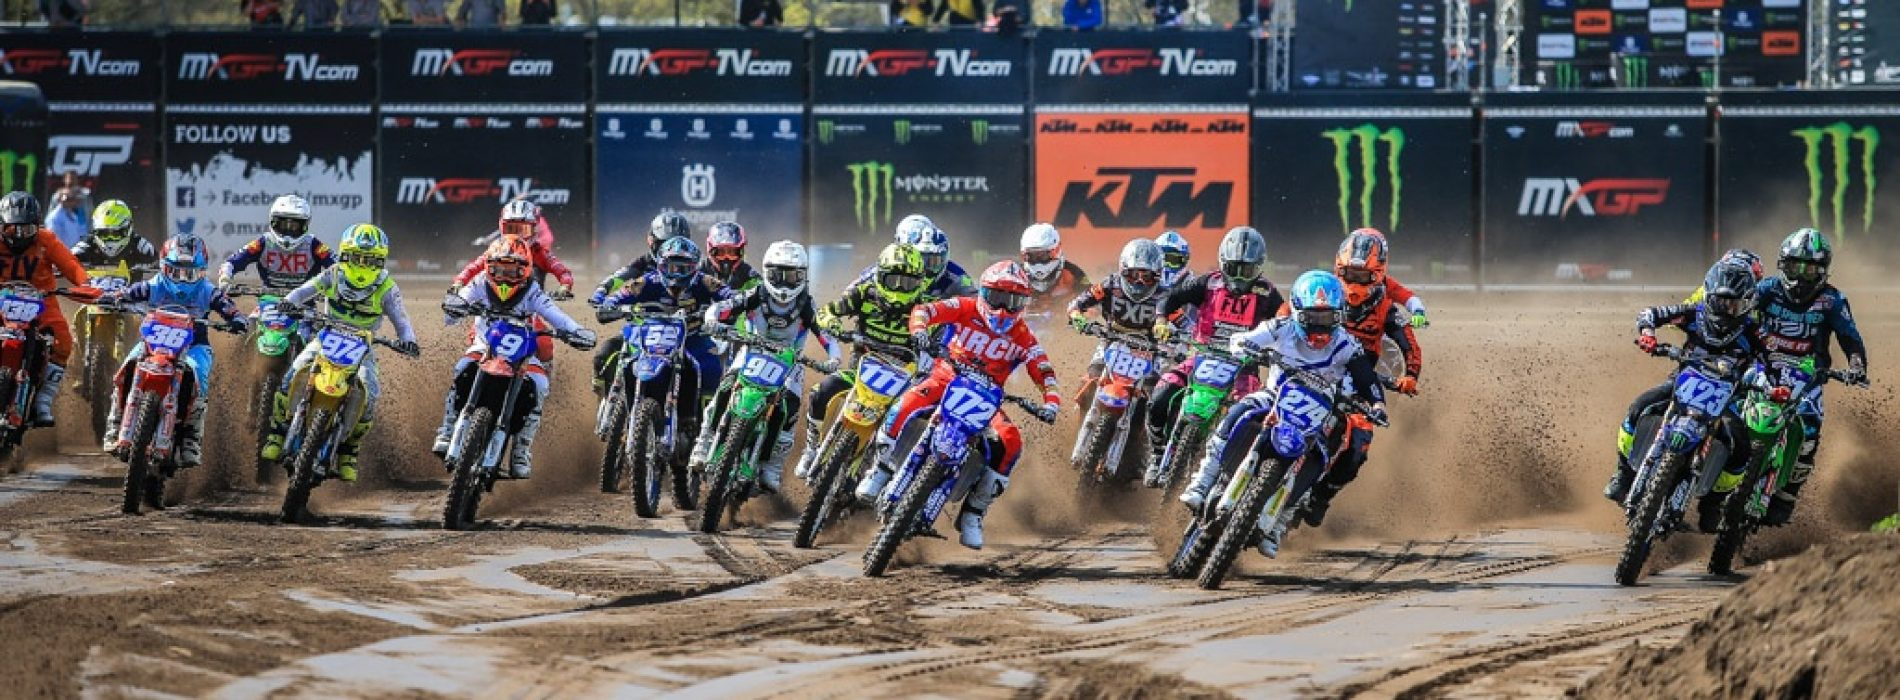 Riders switch of Brands: who wins?